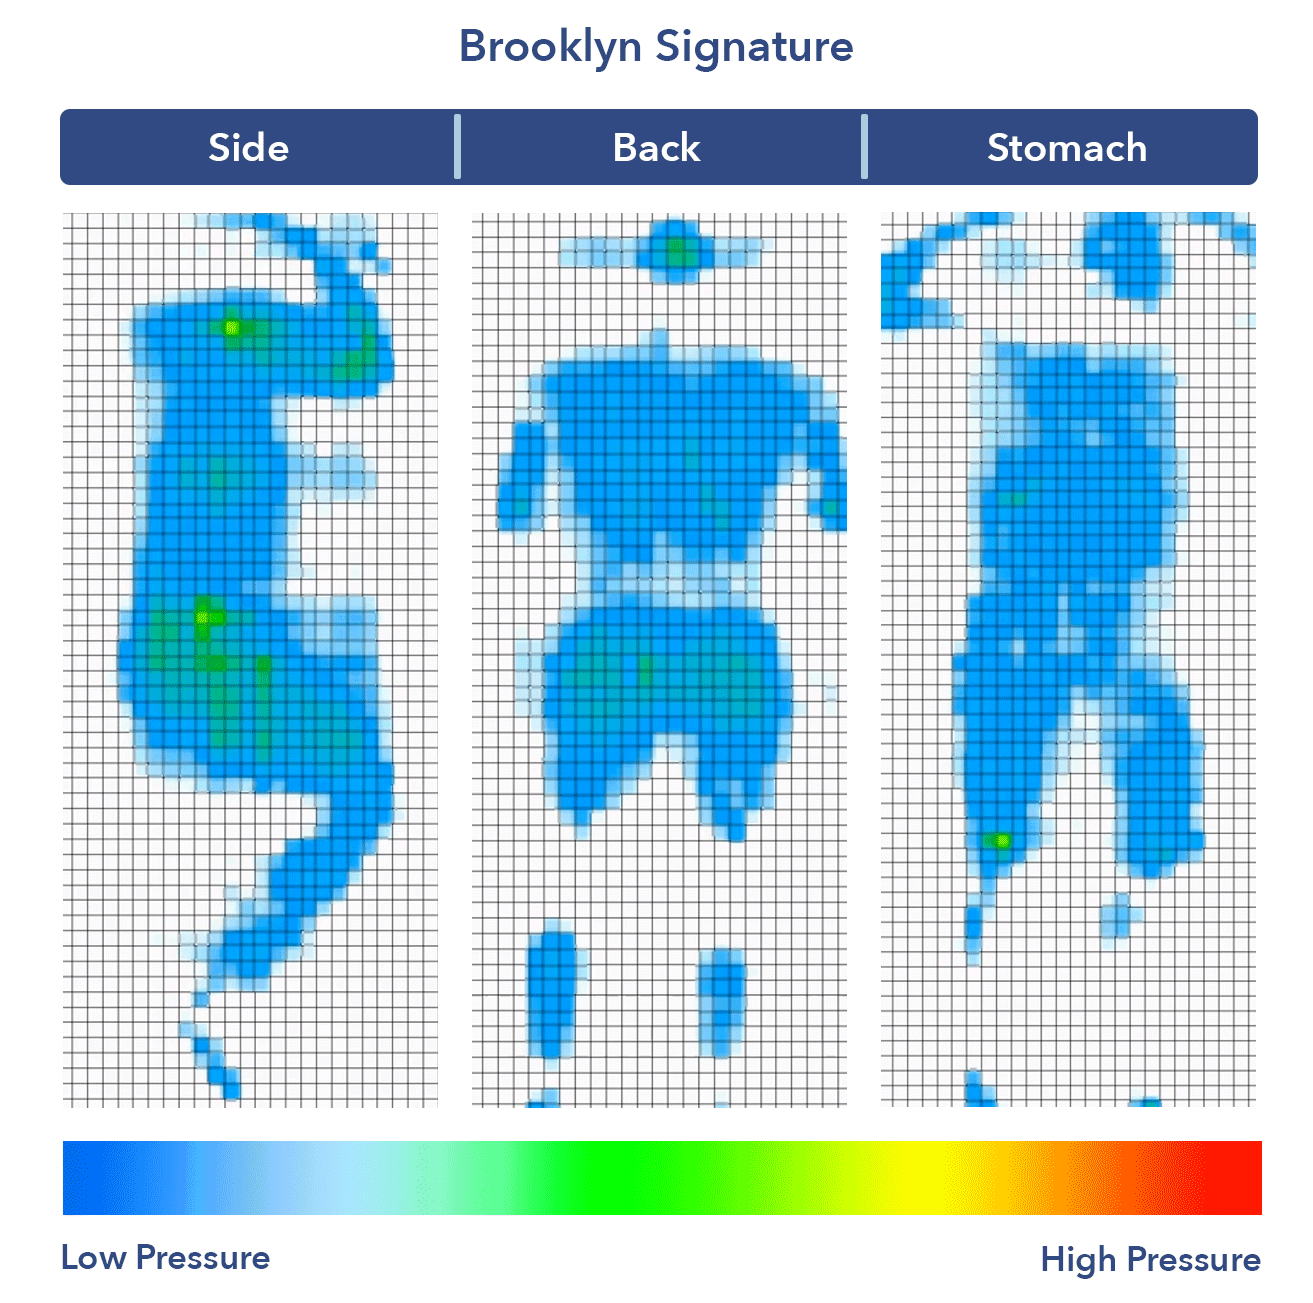 Brooklyn Signature Pressure Map